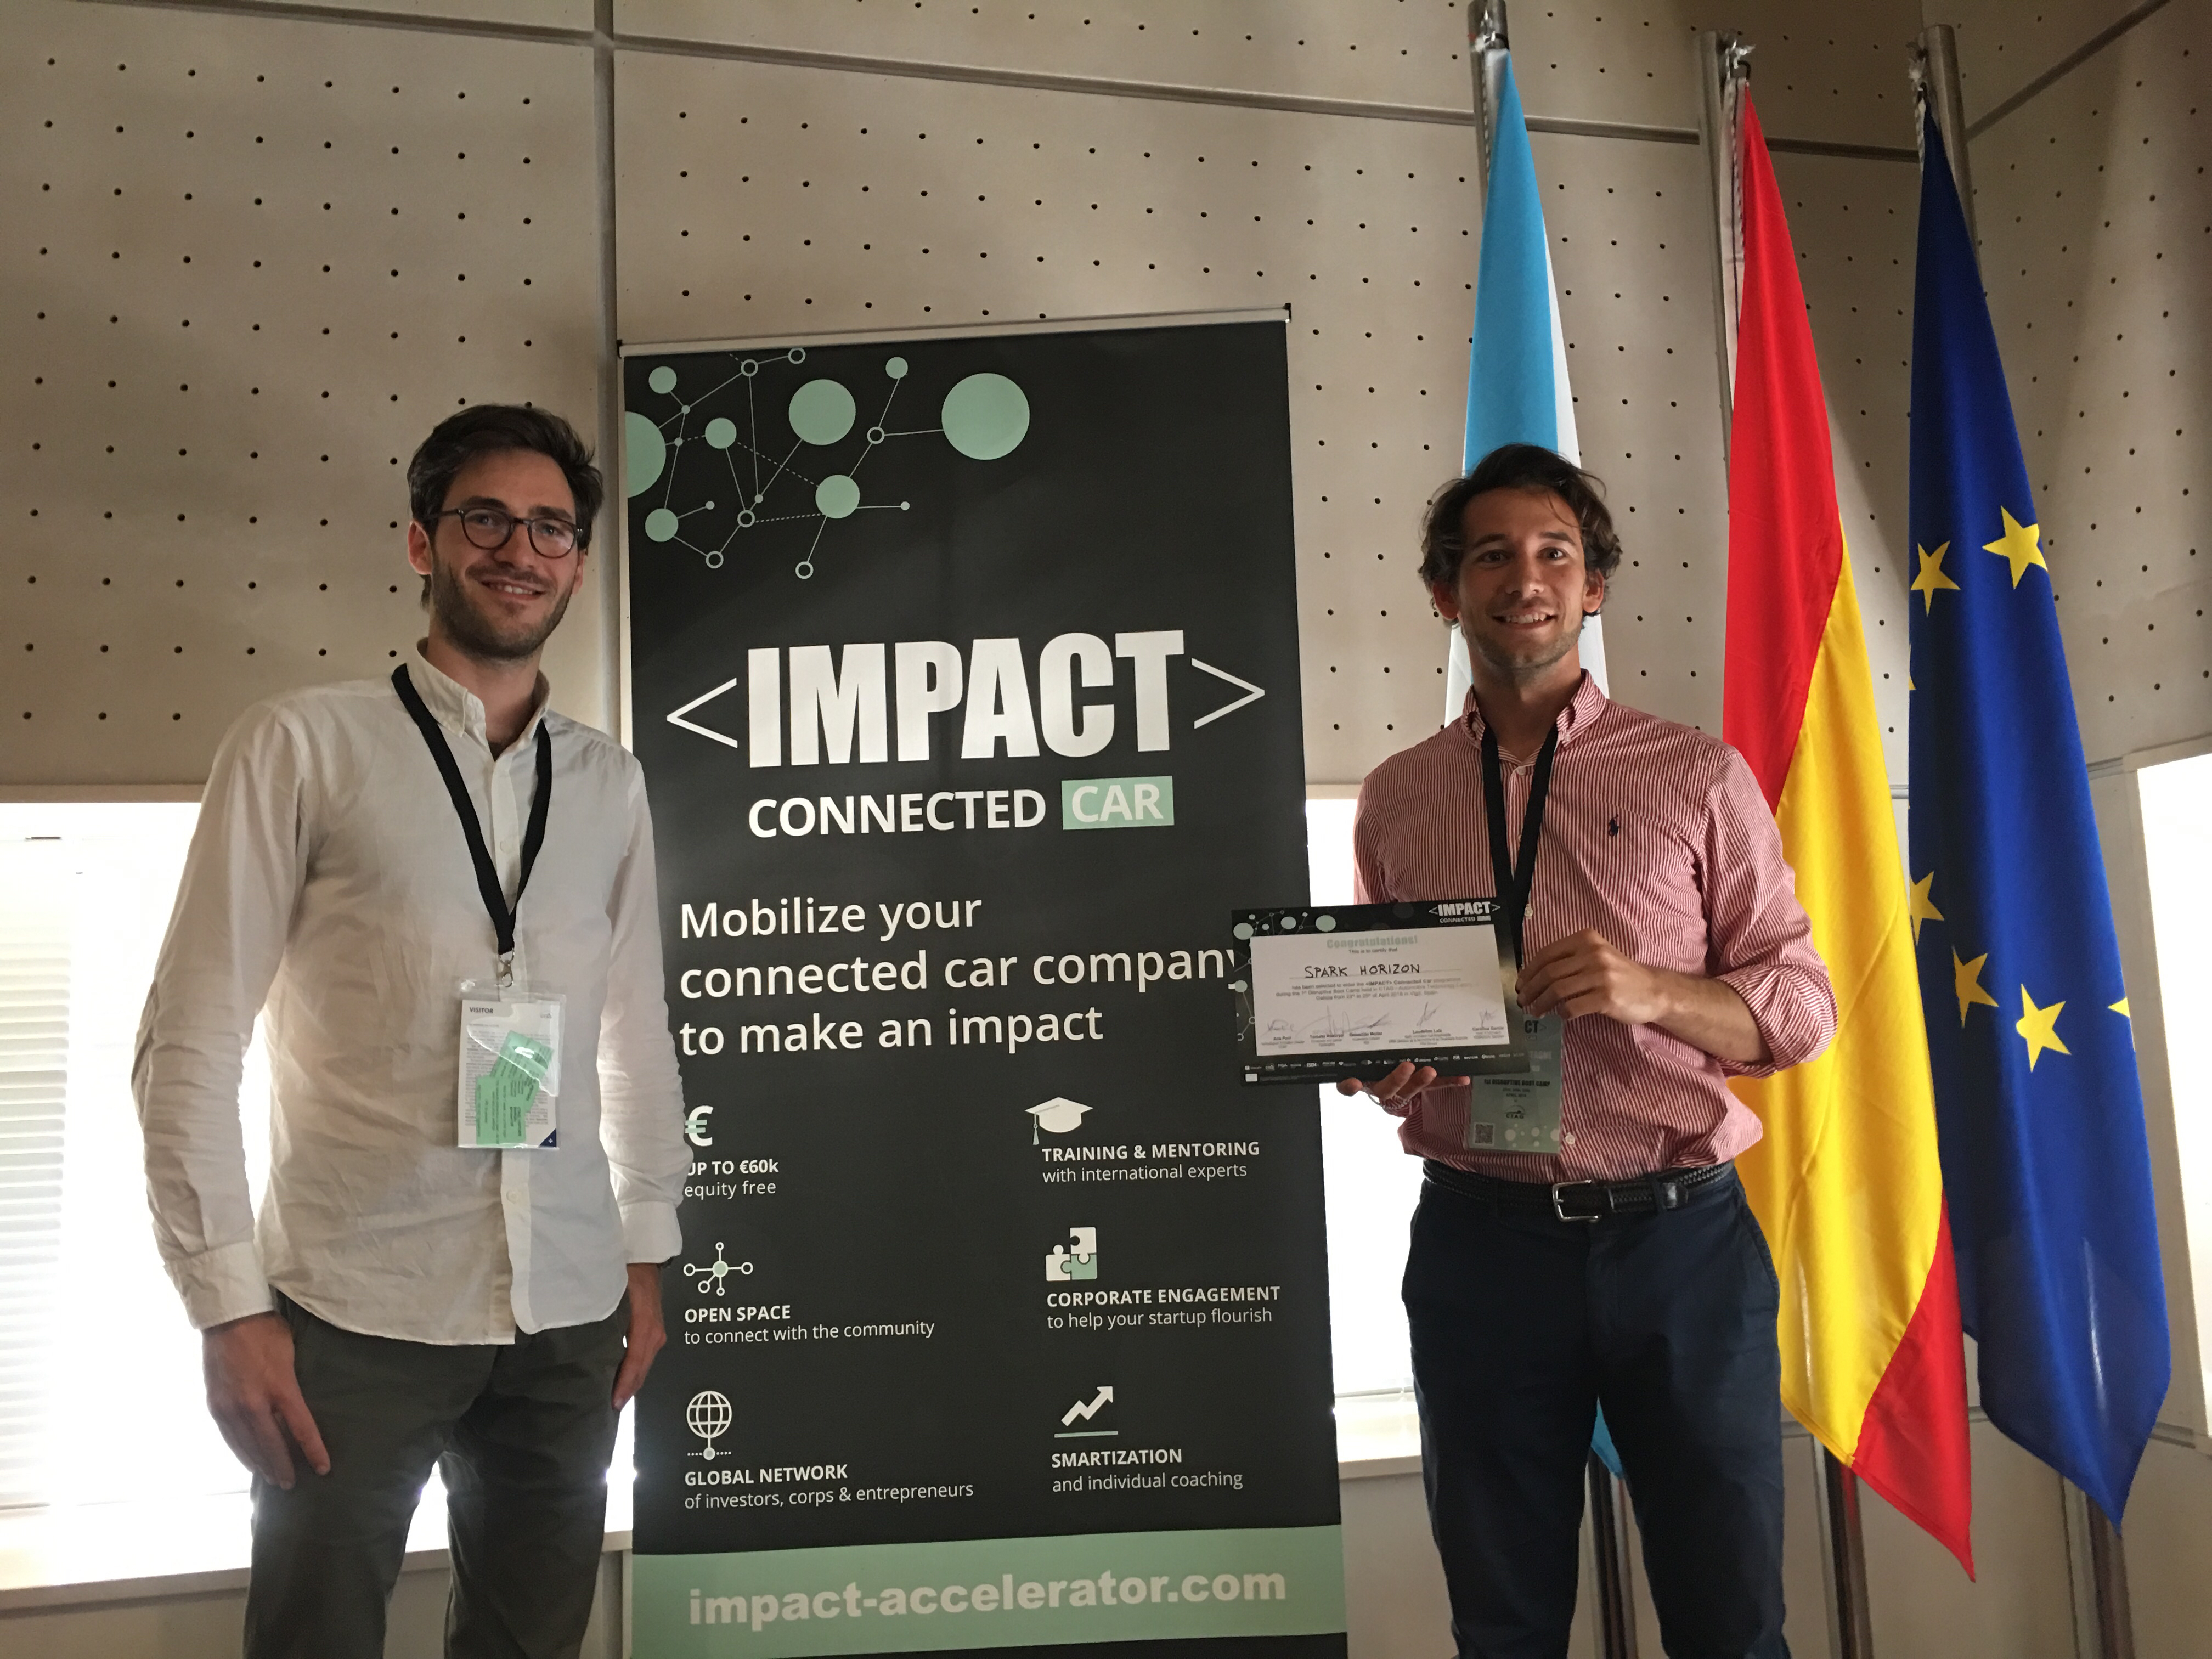 IMPACT Connected Car welcomes 14 new #IMPACTers – IMPACT Accelerator